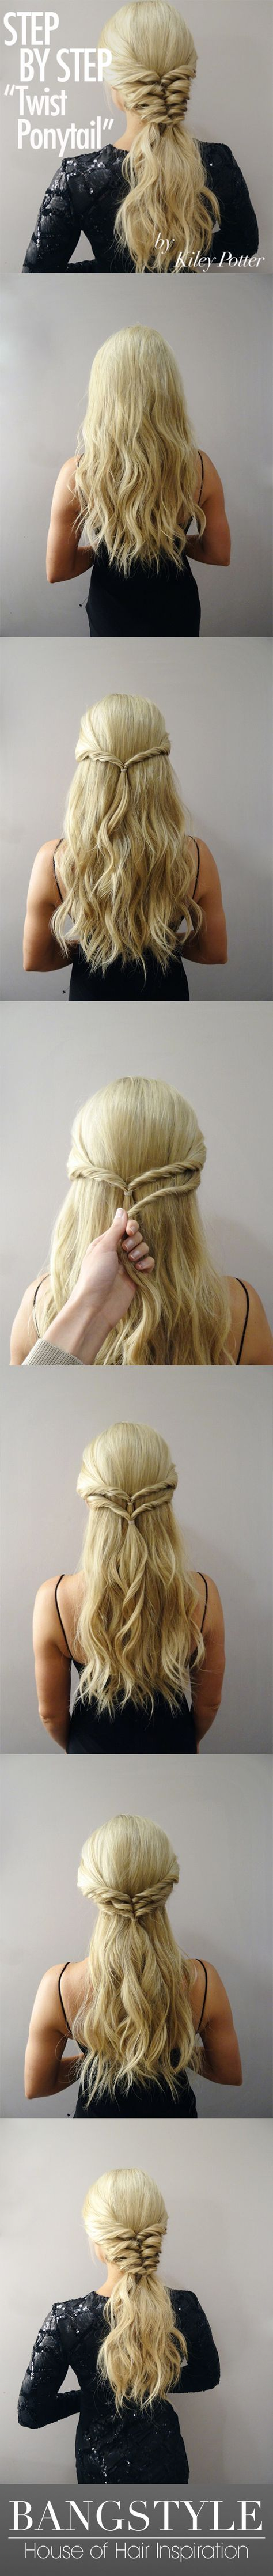 best images about easy days hair on pinterest easy hairstyles